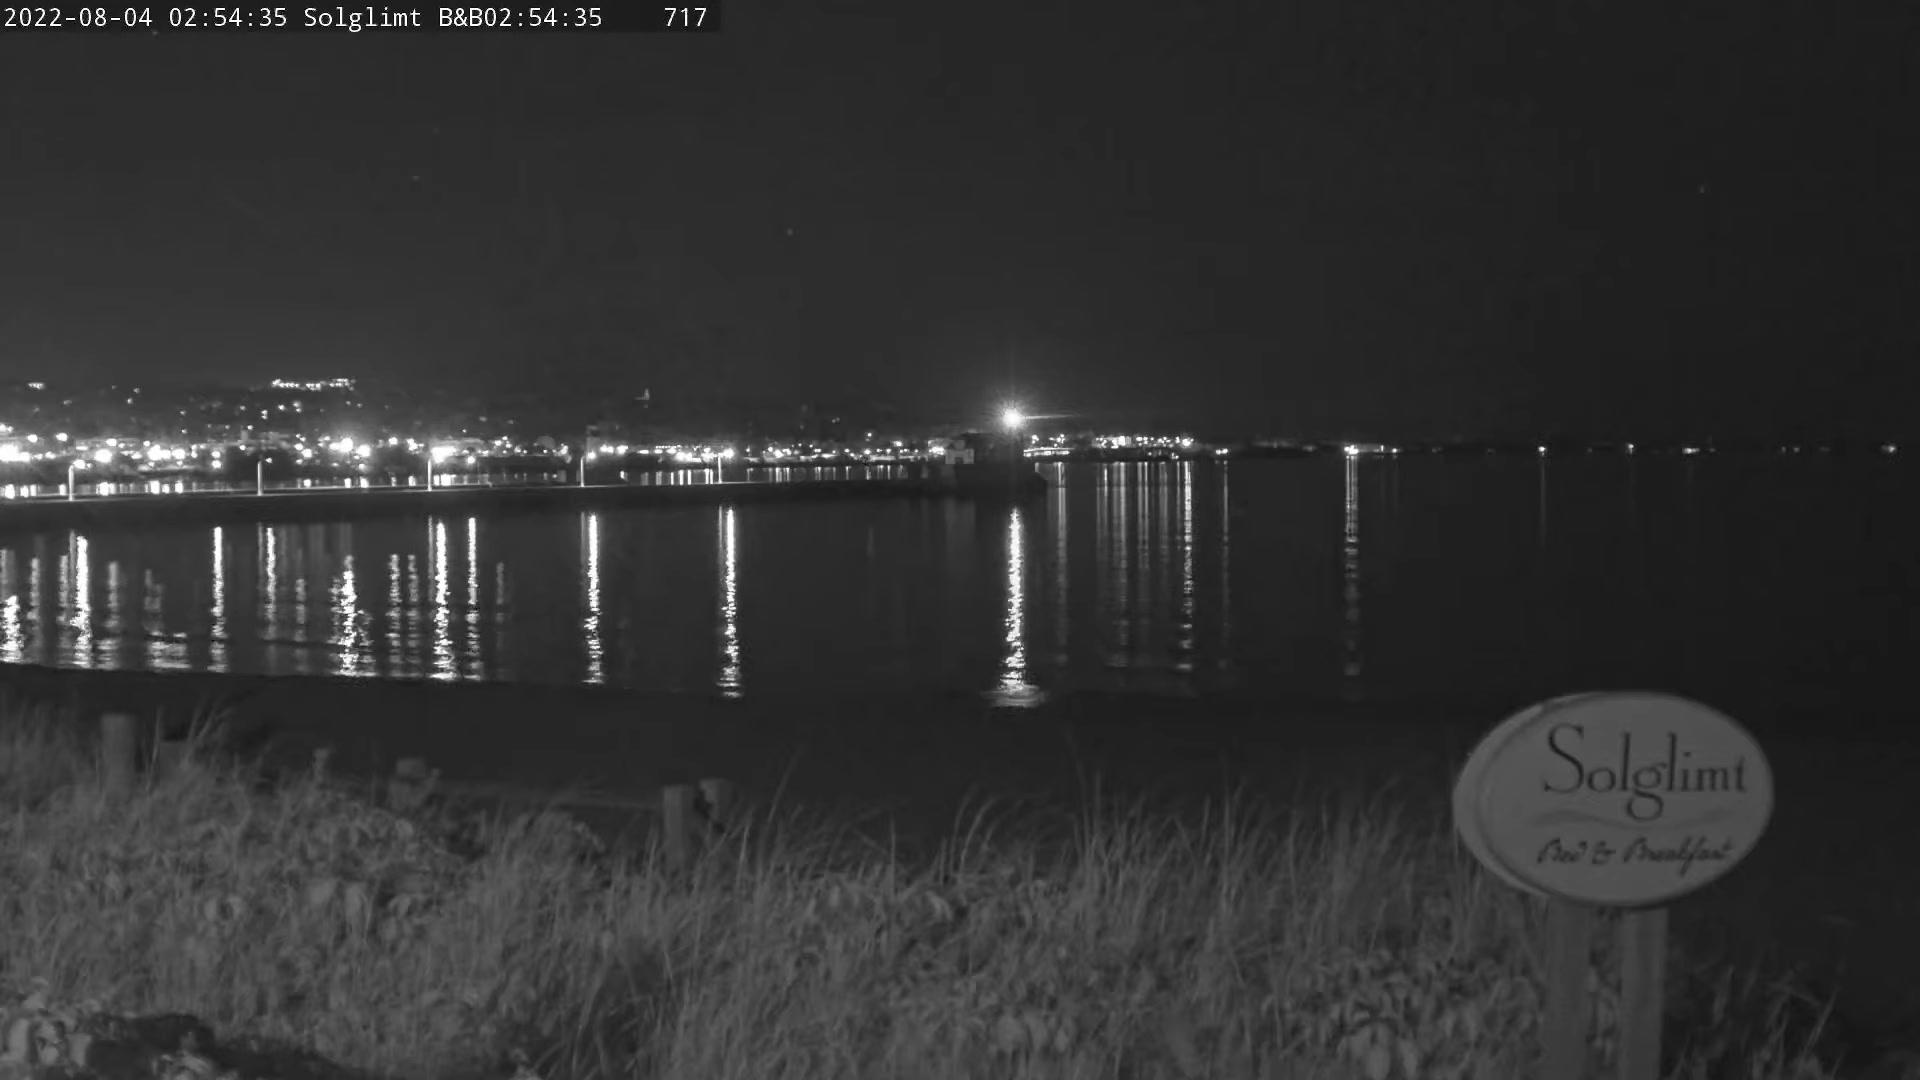 Webcam Duluth: Lake Superior from Solglimt